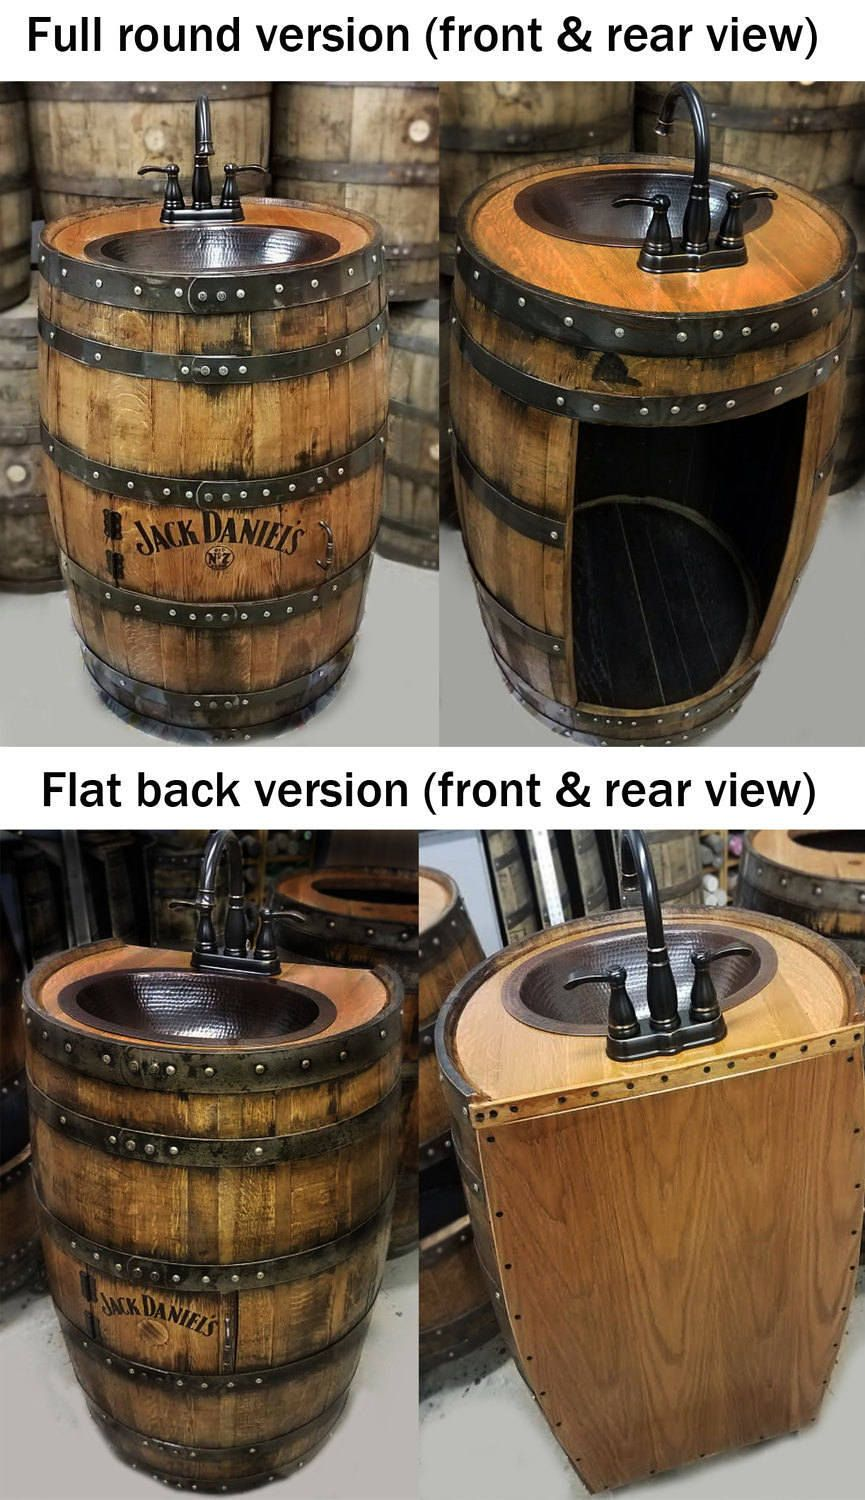 To order almost any artwork or theme can be put on the barrel since it is done by hand with woodburning and stains